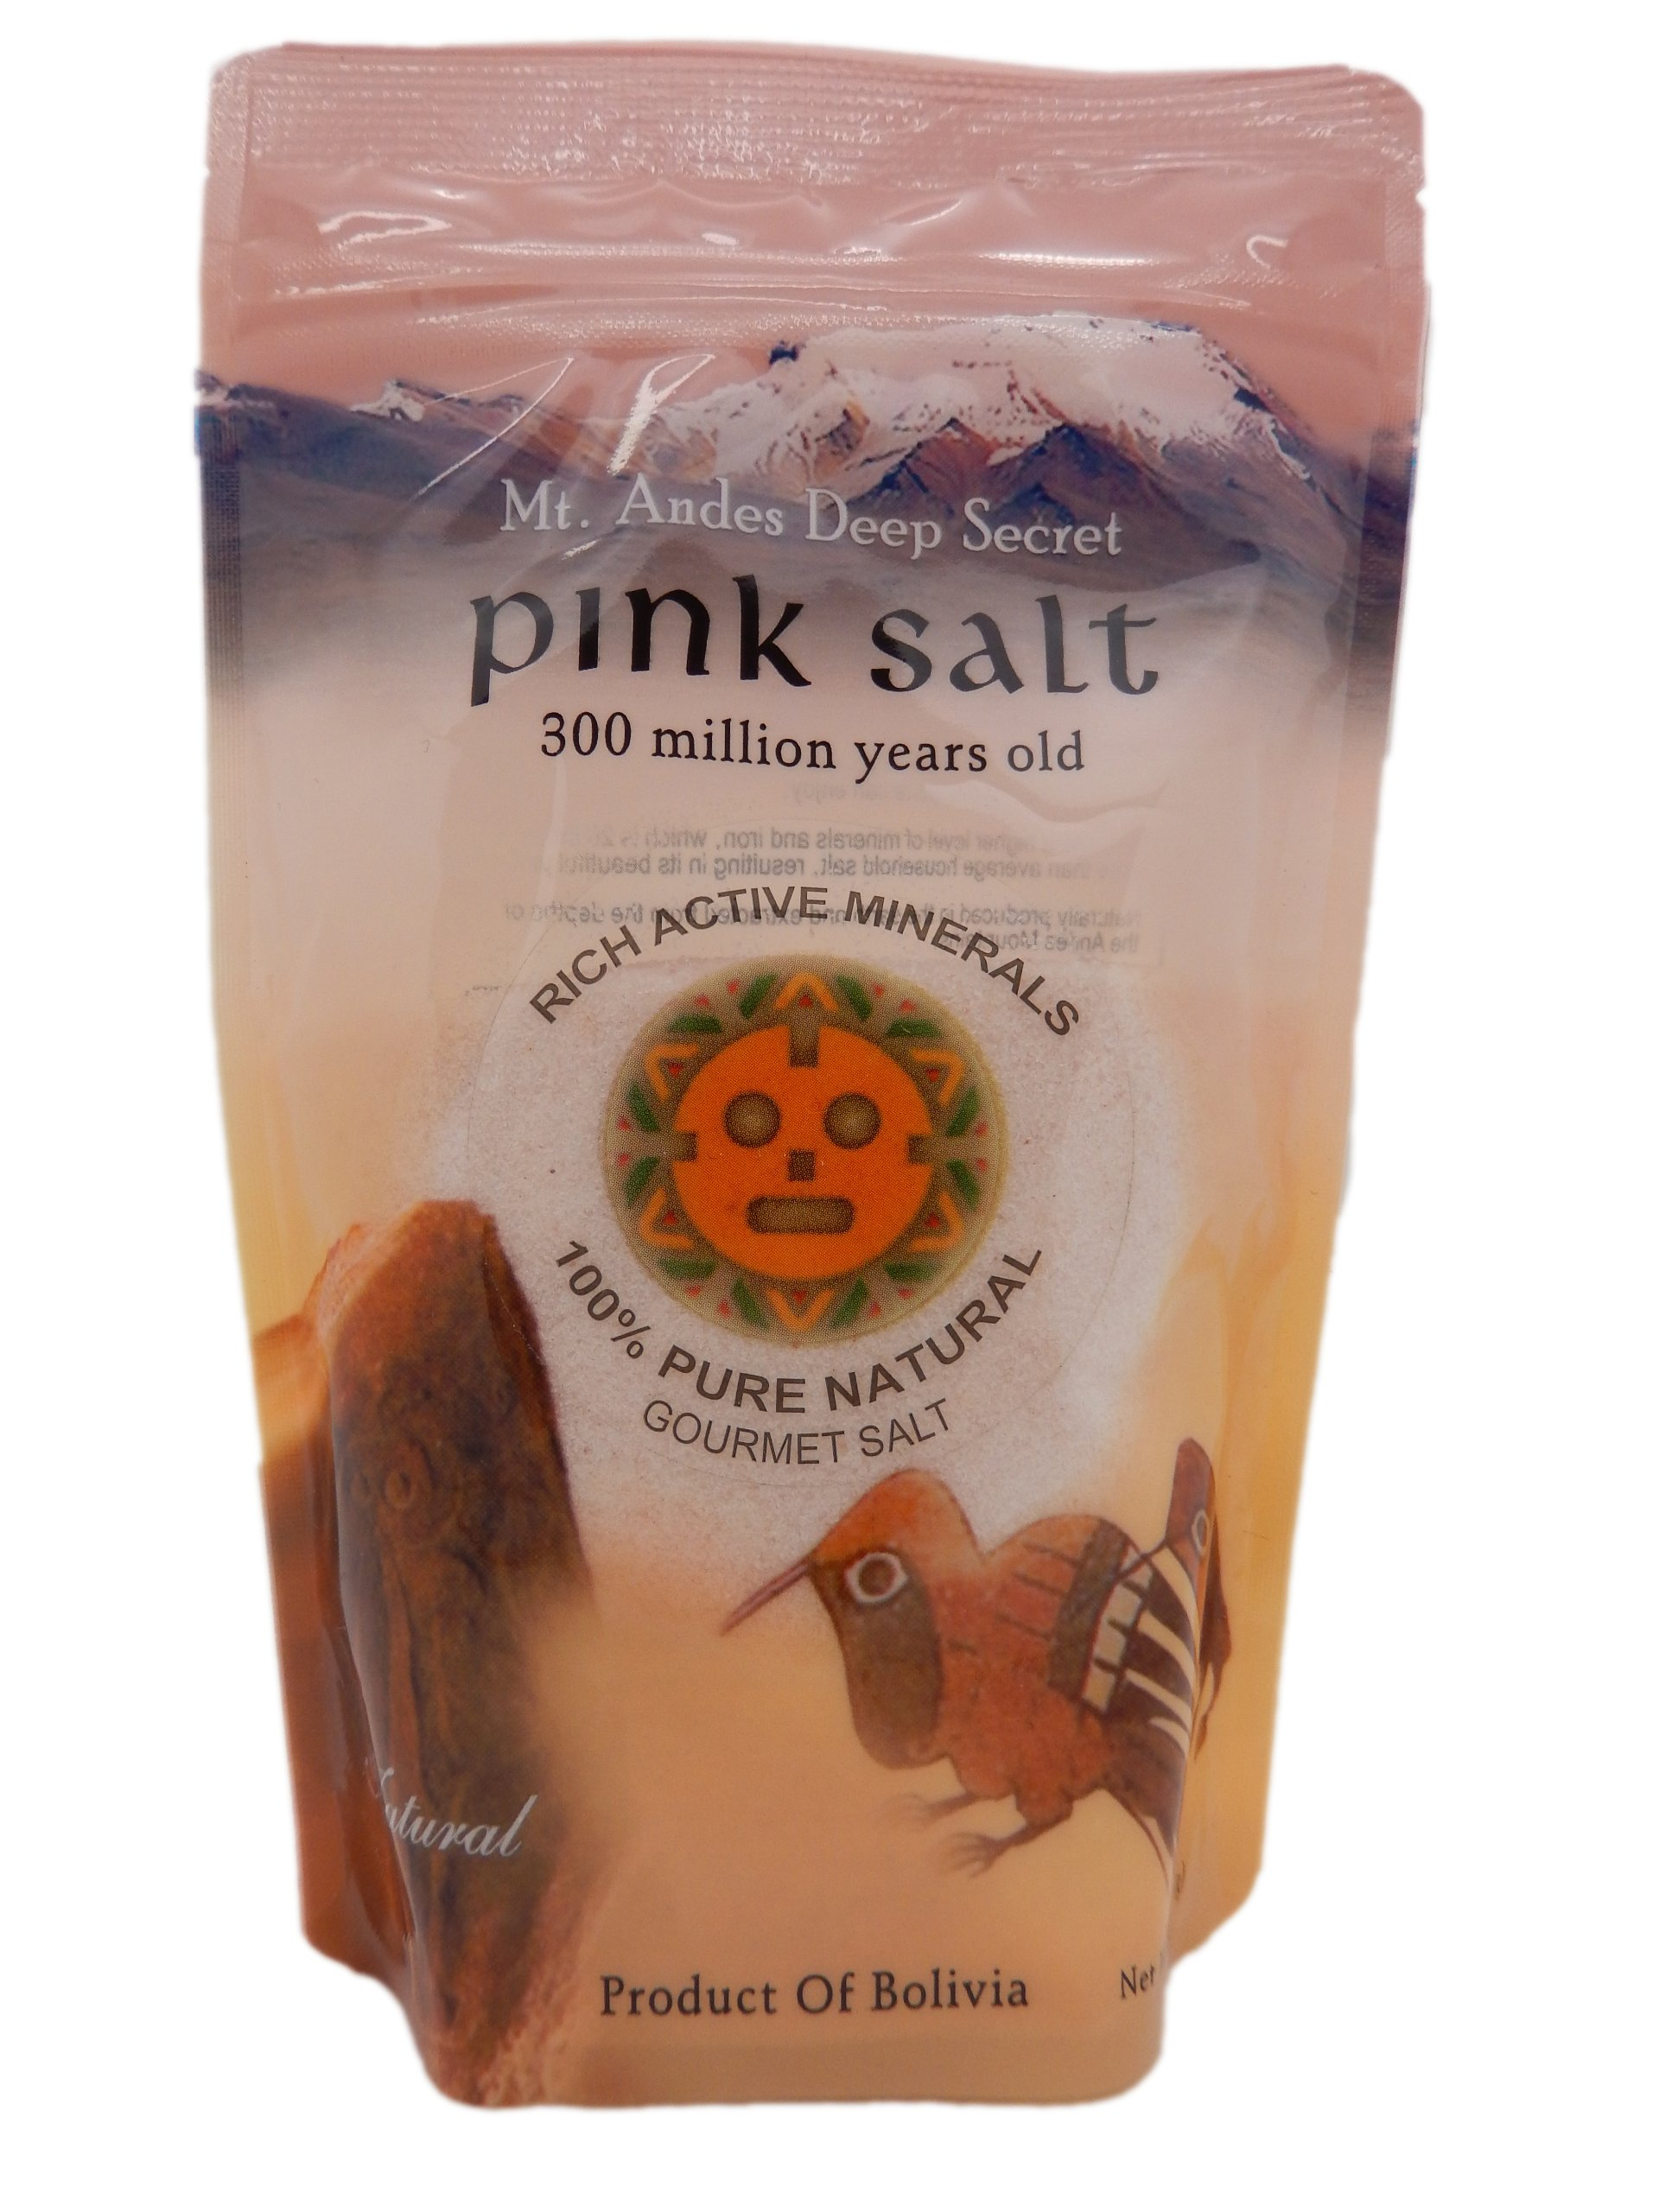 Pink Salt, Deep Secret Pink Salt (Fine), 100% Pure Natural Gourmet Salt, Bbq(barbeque) Salt, Seasoning Salt, Mt Andes Bolivia Pink Salt. by KariSalt